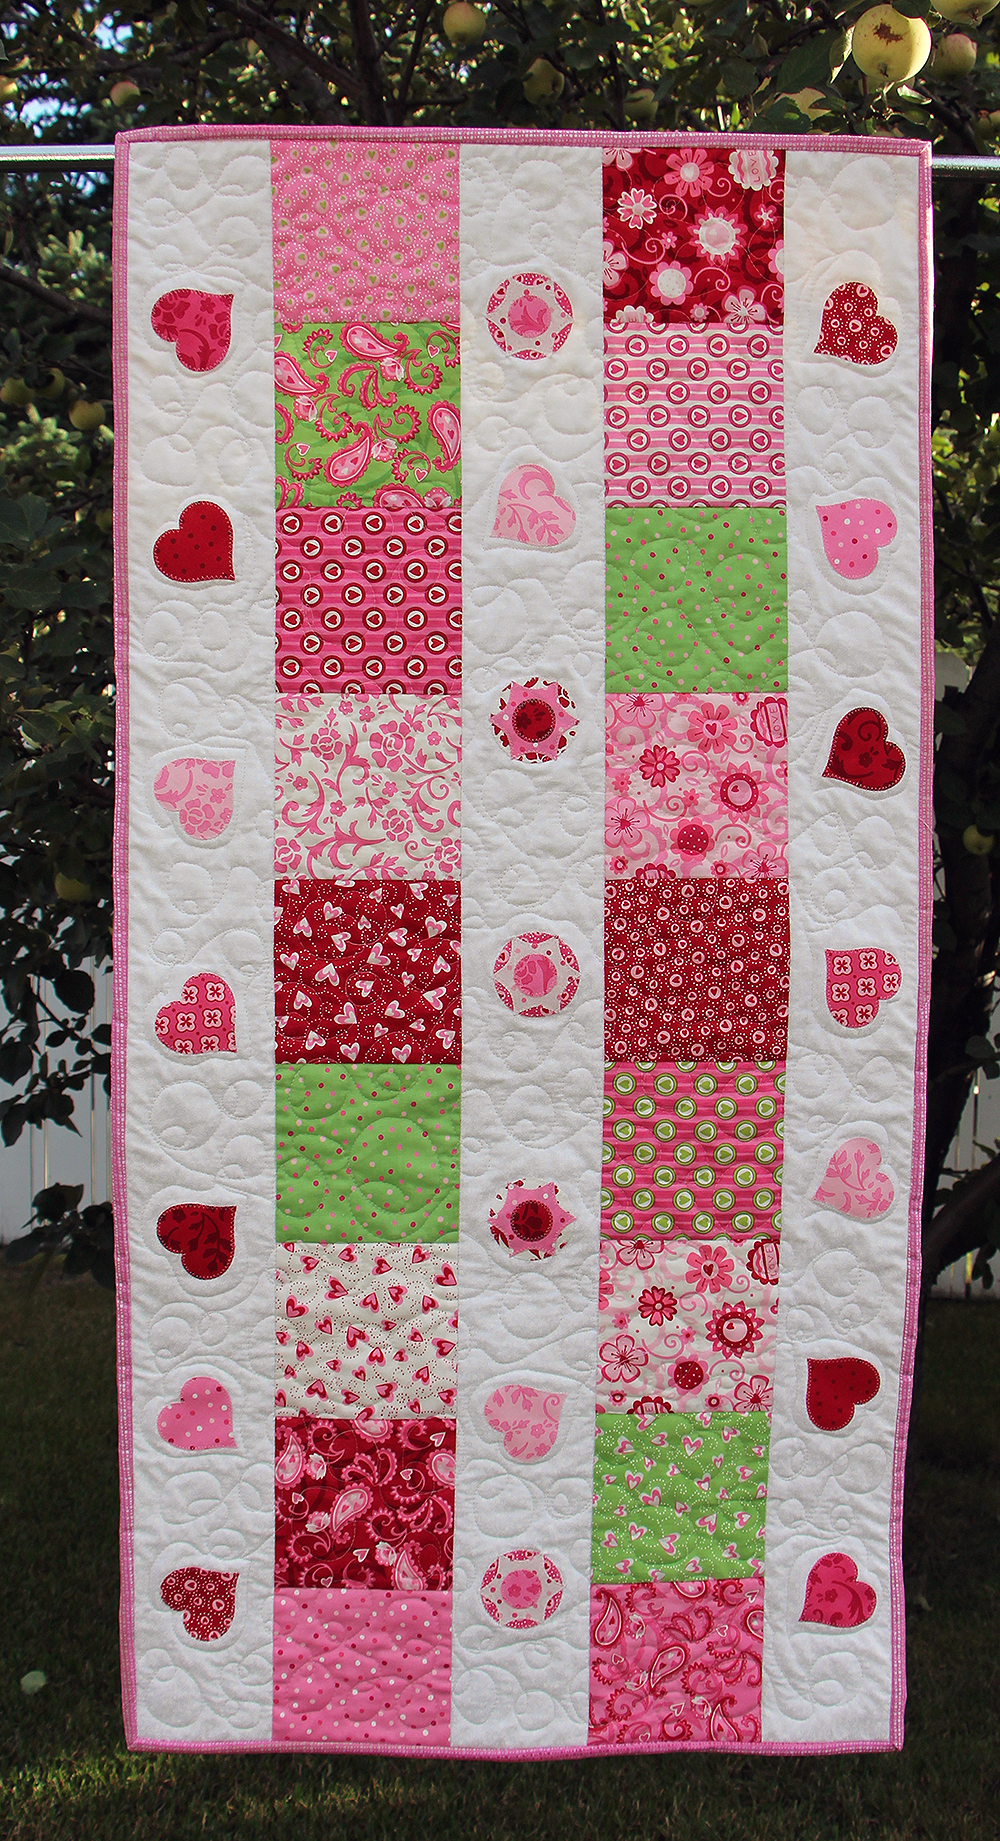 Fusible Web Appliqué used to construct designs in Tweet-Heart pattern by Chatterbox Quilts